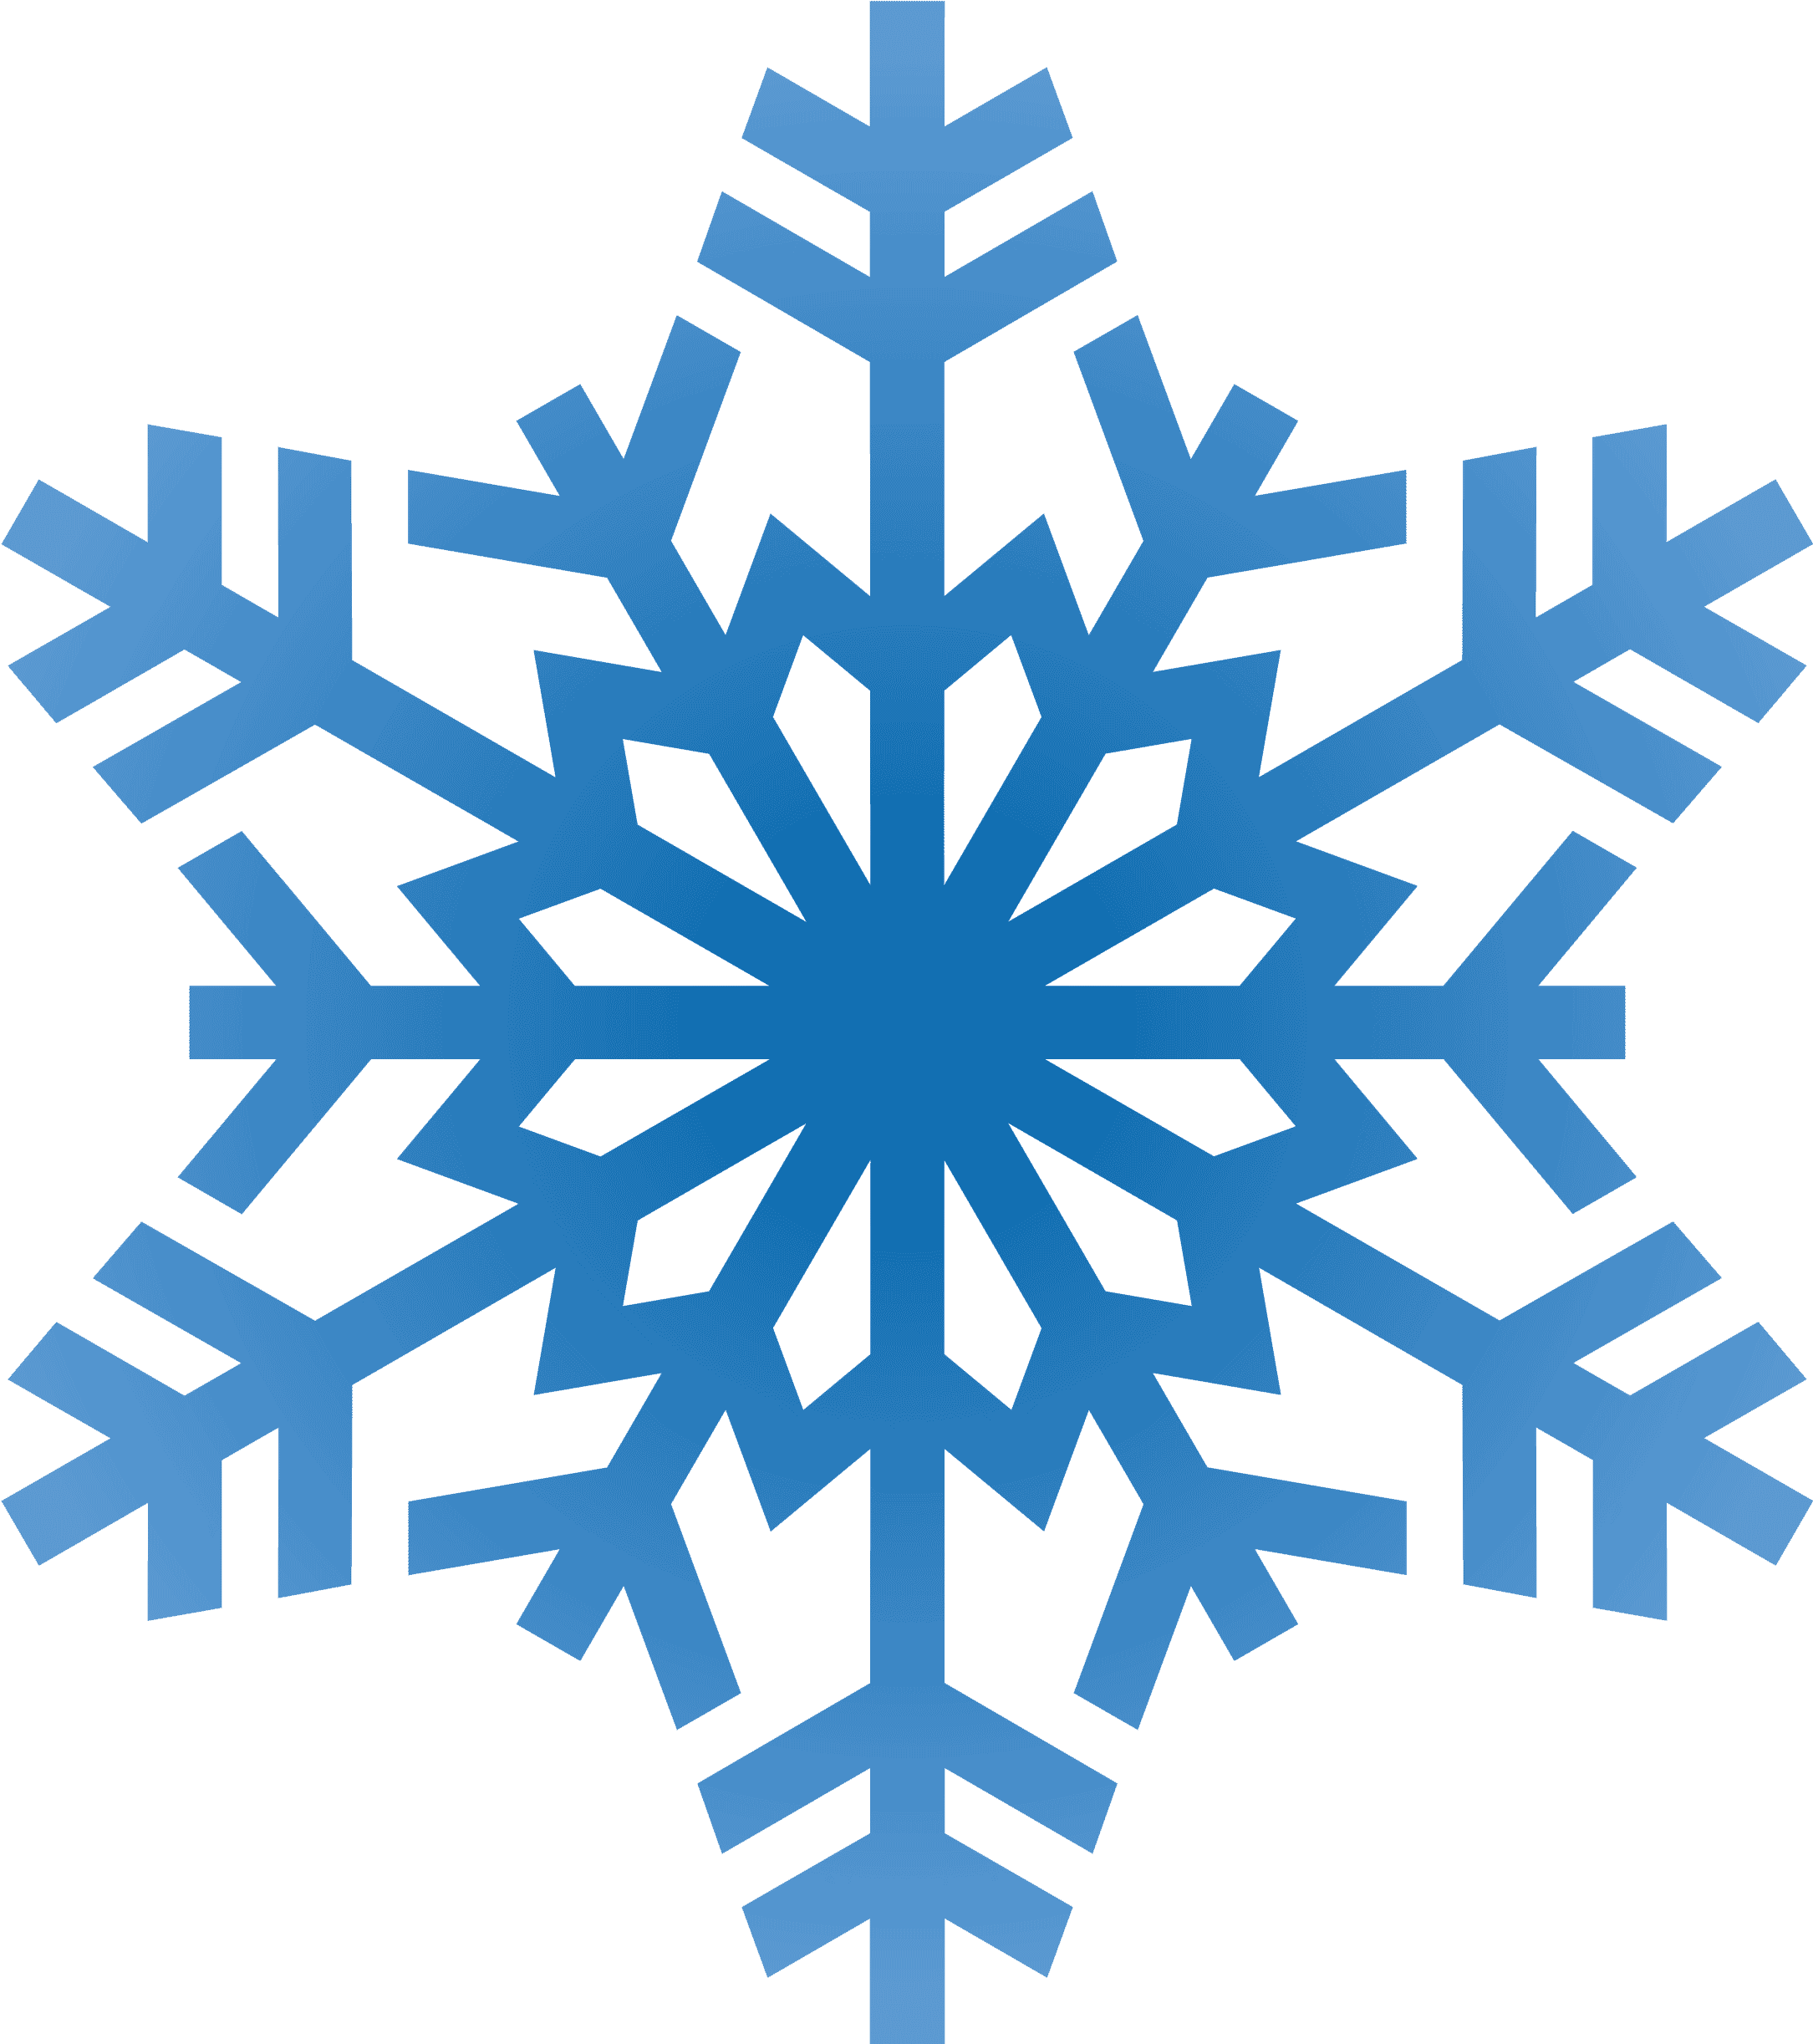 Winter Clipart Transparent Background Snowflake.